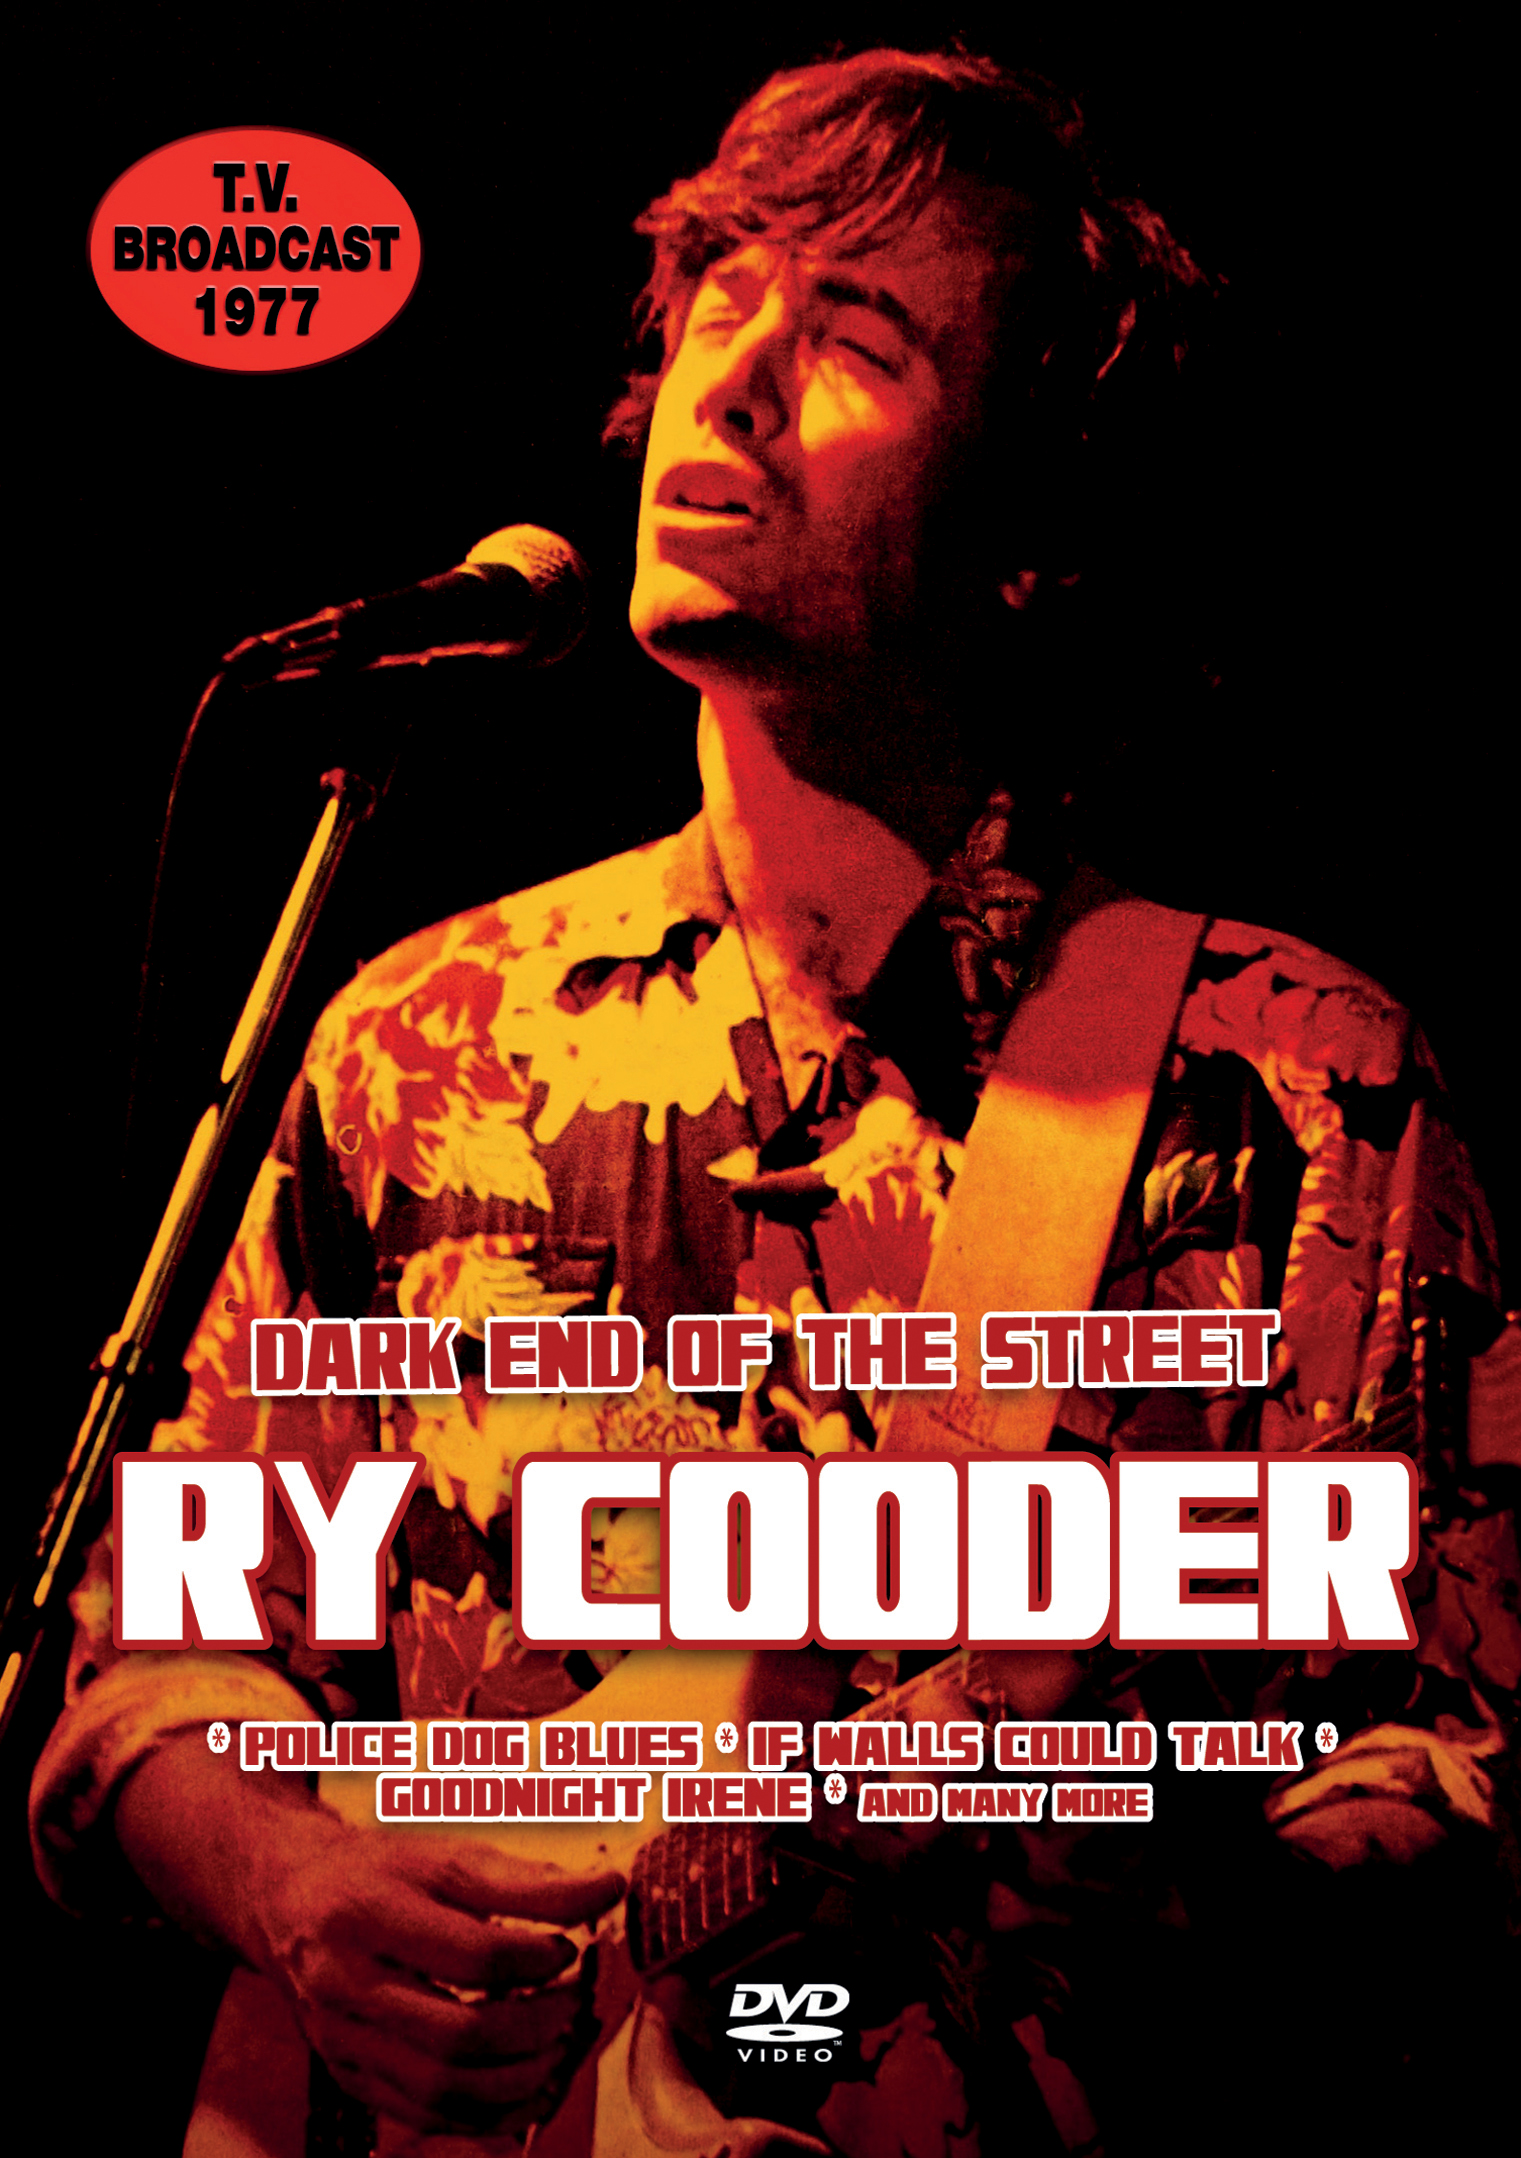 Ry Cooder: Dark End of the Street